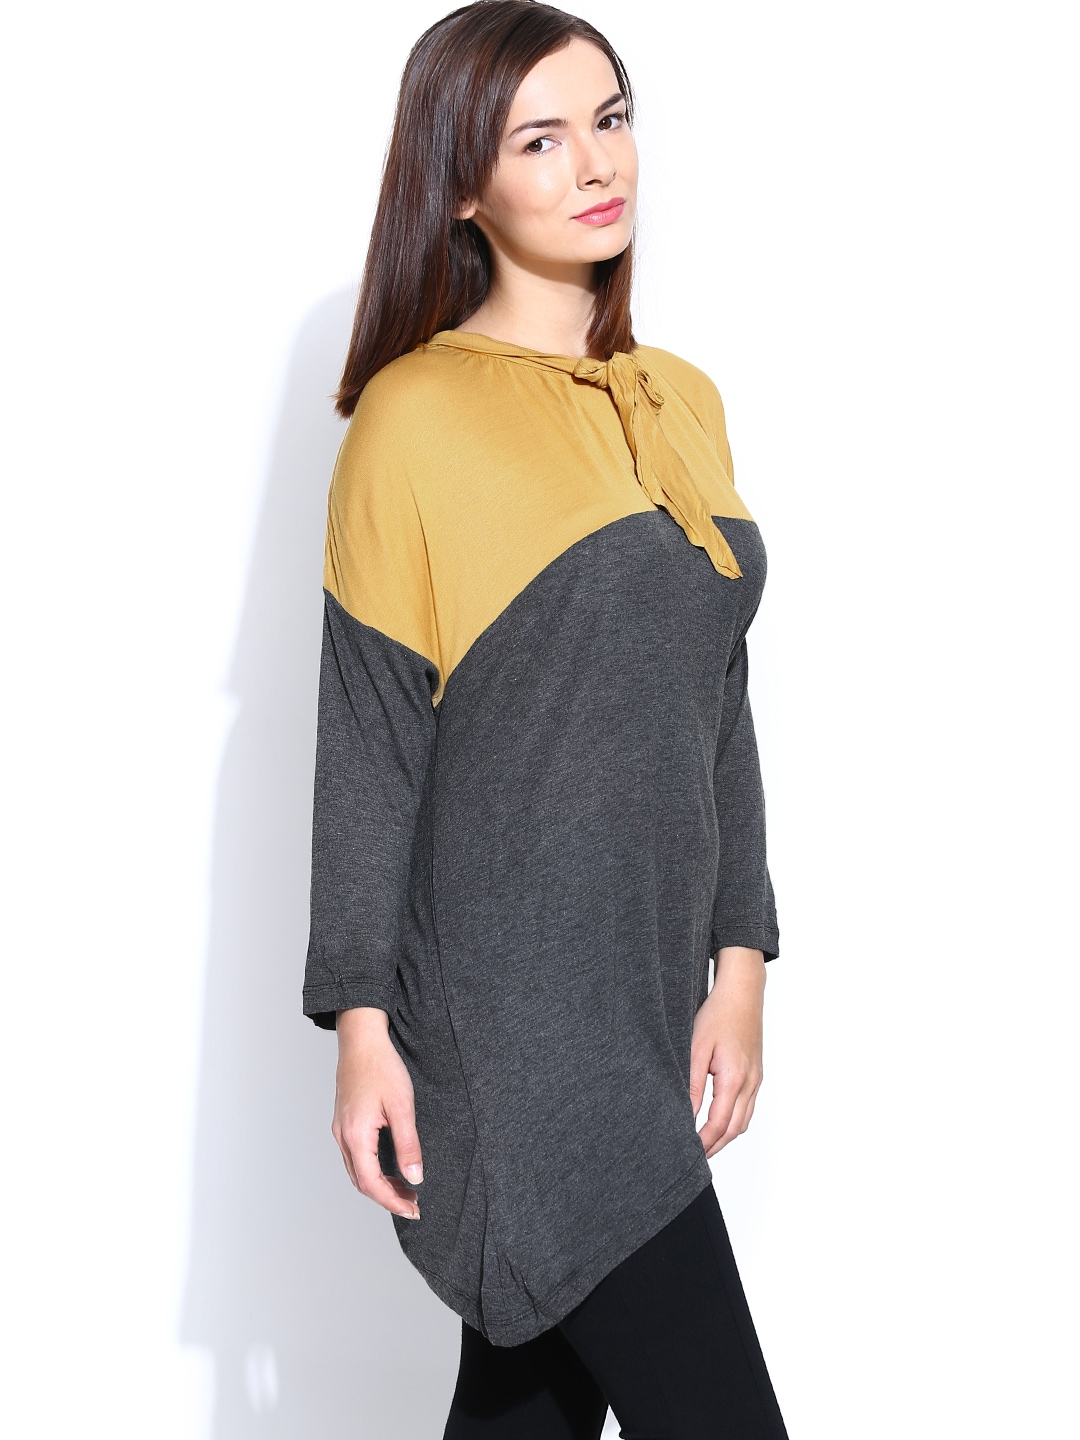 Buy Mustard Women Tops online in India. Huge selection of Women Mustard Tops at 10mins.ml All India FREE Shipping. Cash on Delivery available.